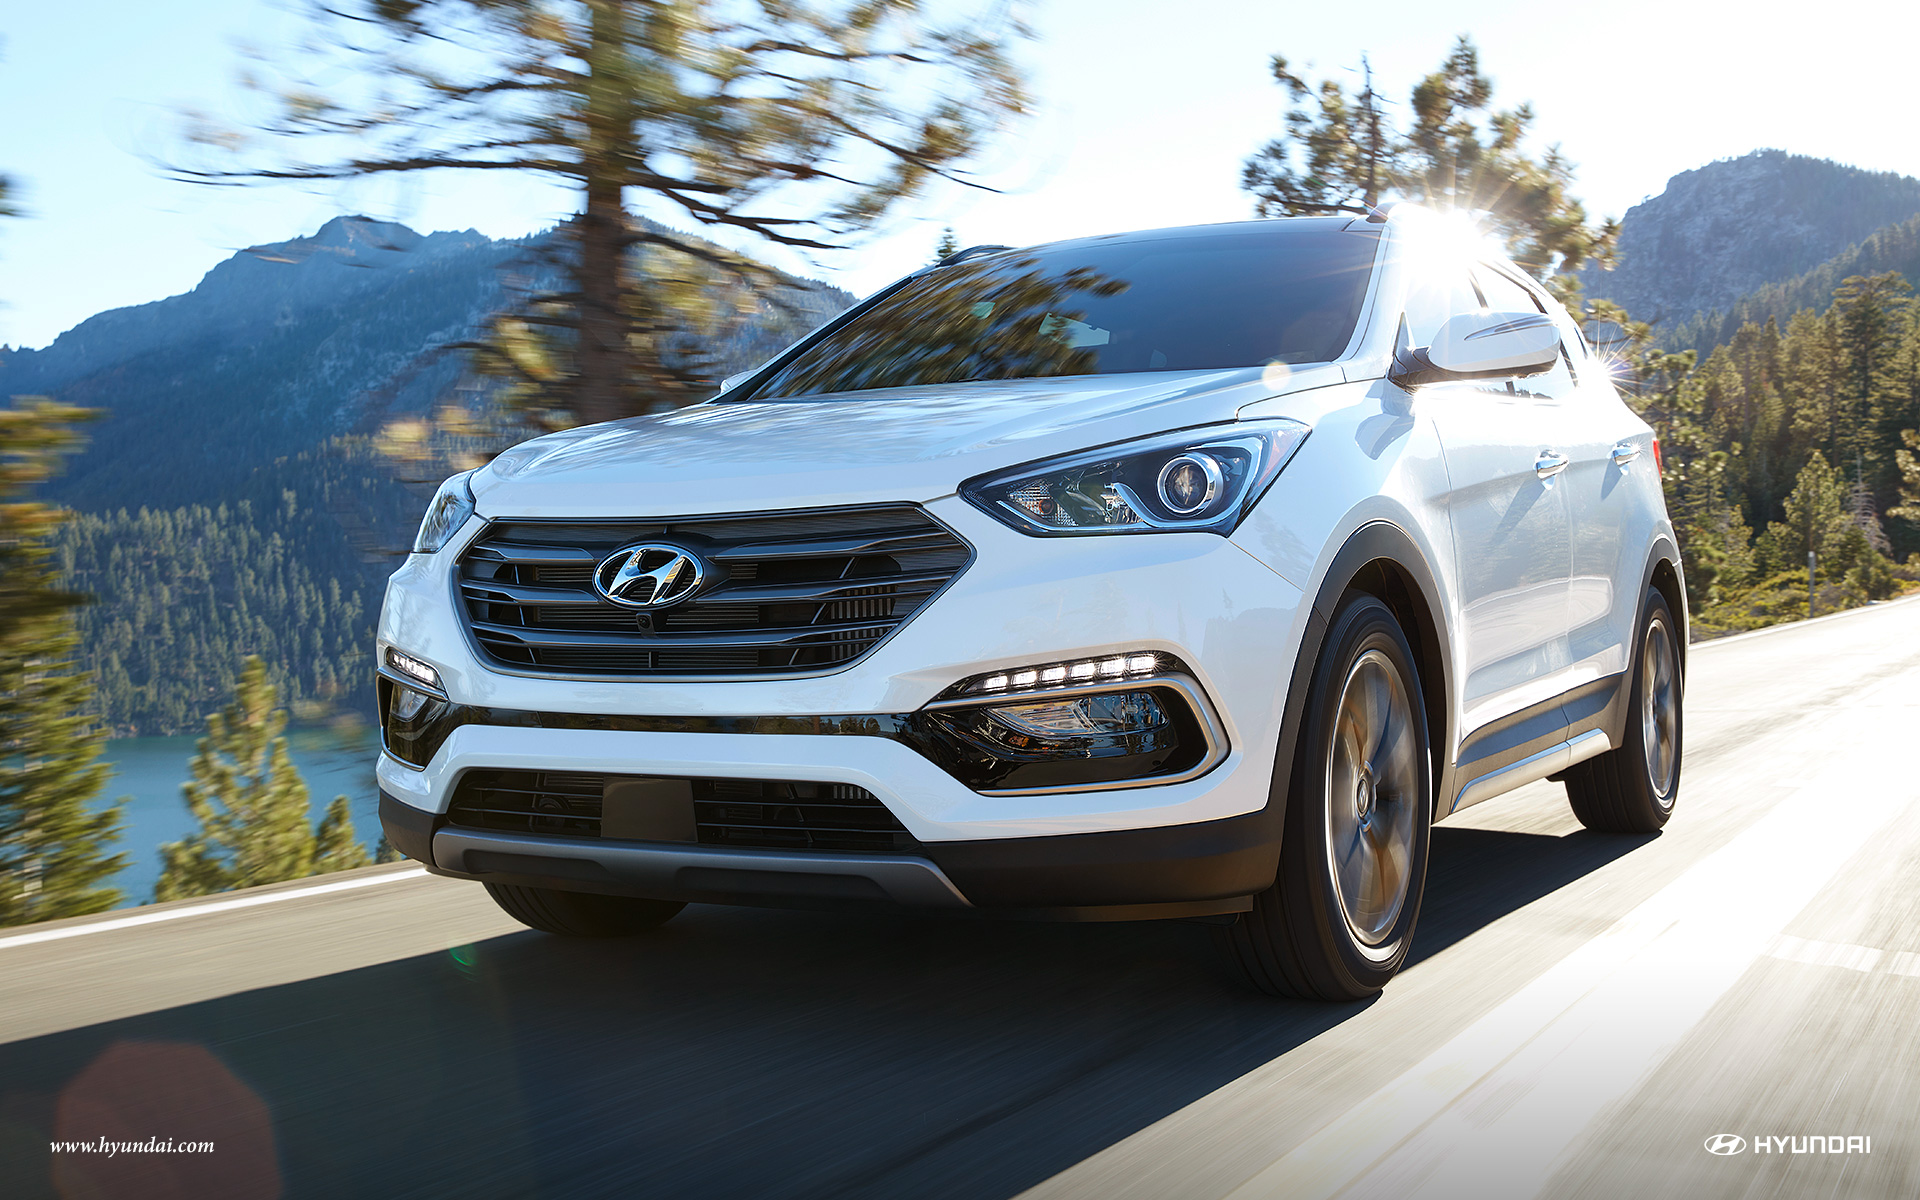 2017 Hyundai Santa Fe Sport for Lease near Washington, DC